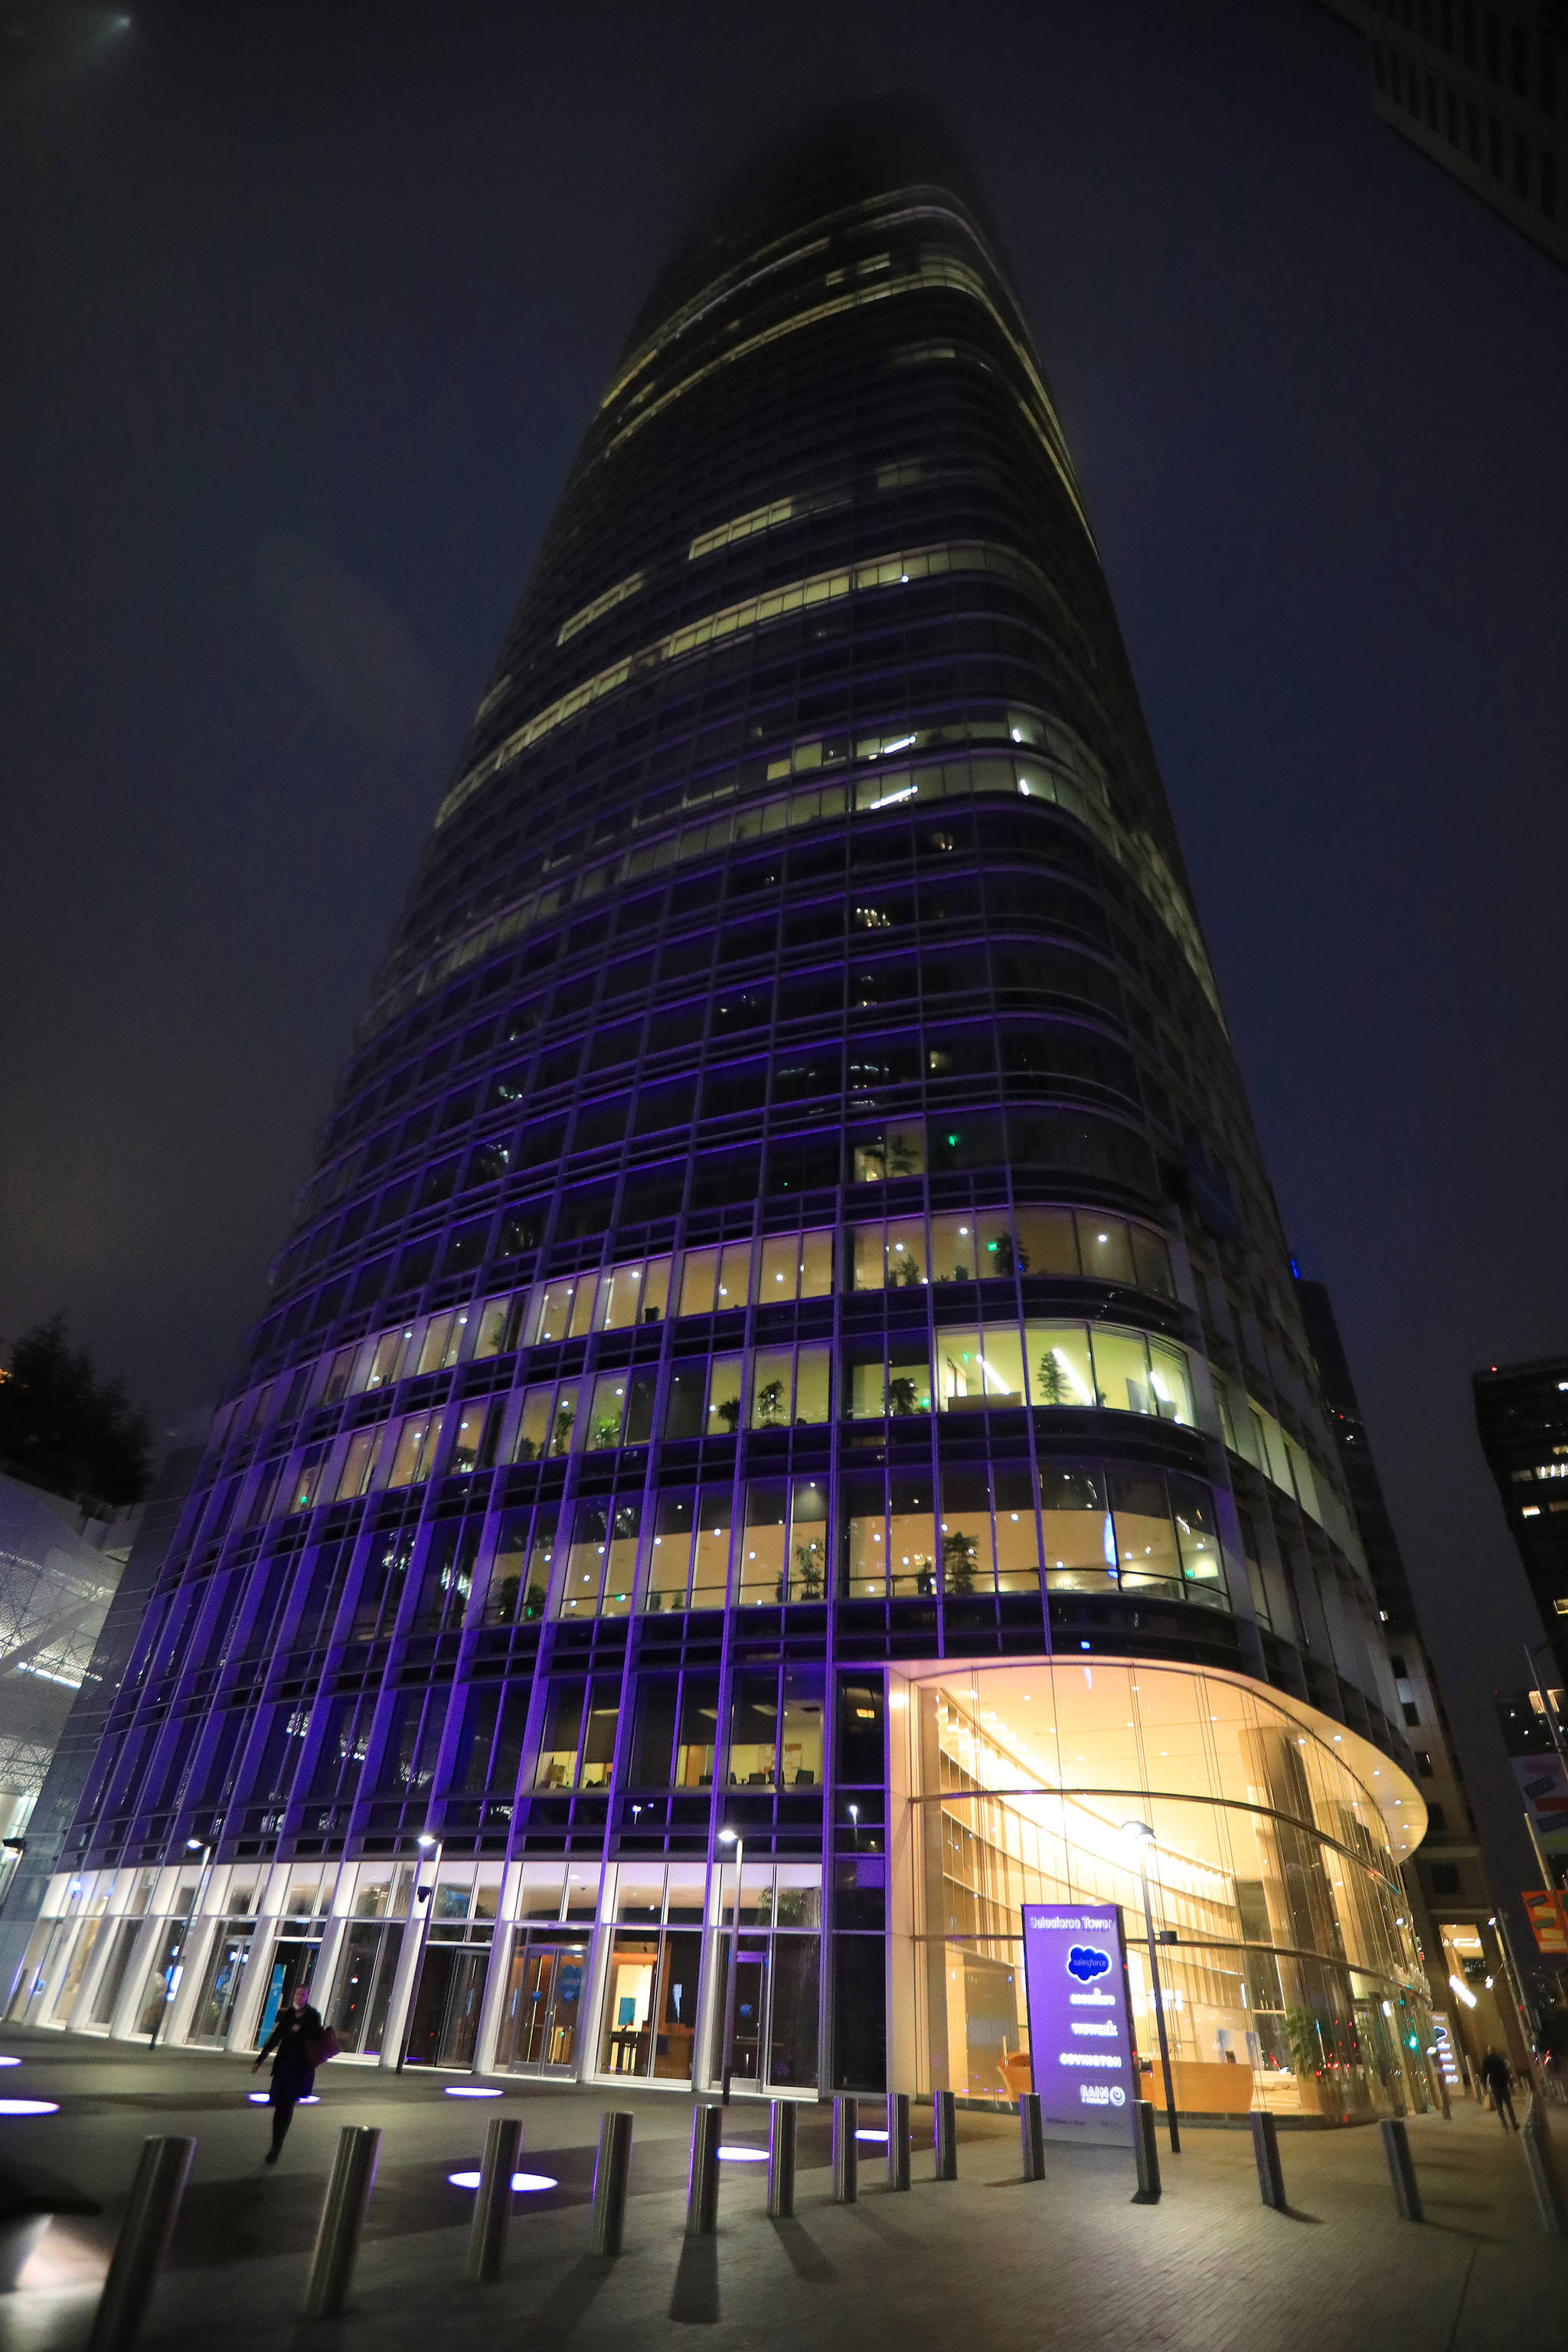 Salesforce Tower in San Francisco, which features a comprehensive water-recycling system, on July 30, 2021. Water recycling in office buildings is seen as a promising sustainability effort, as well as a smart hedge against rising costs and future shortages. (Jim Wilson/The New York Times)